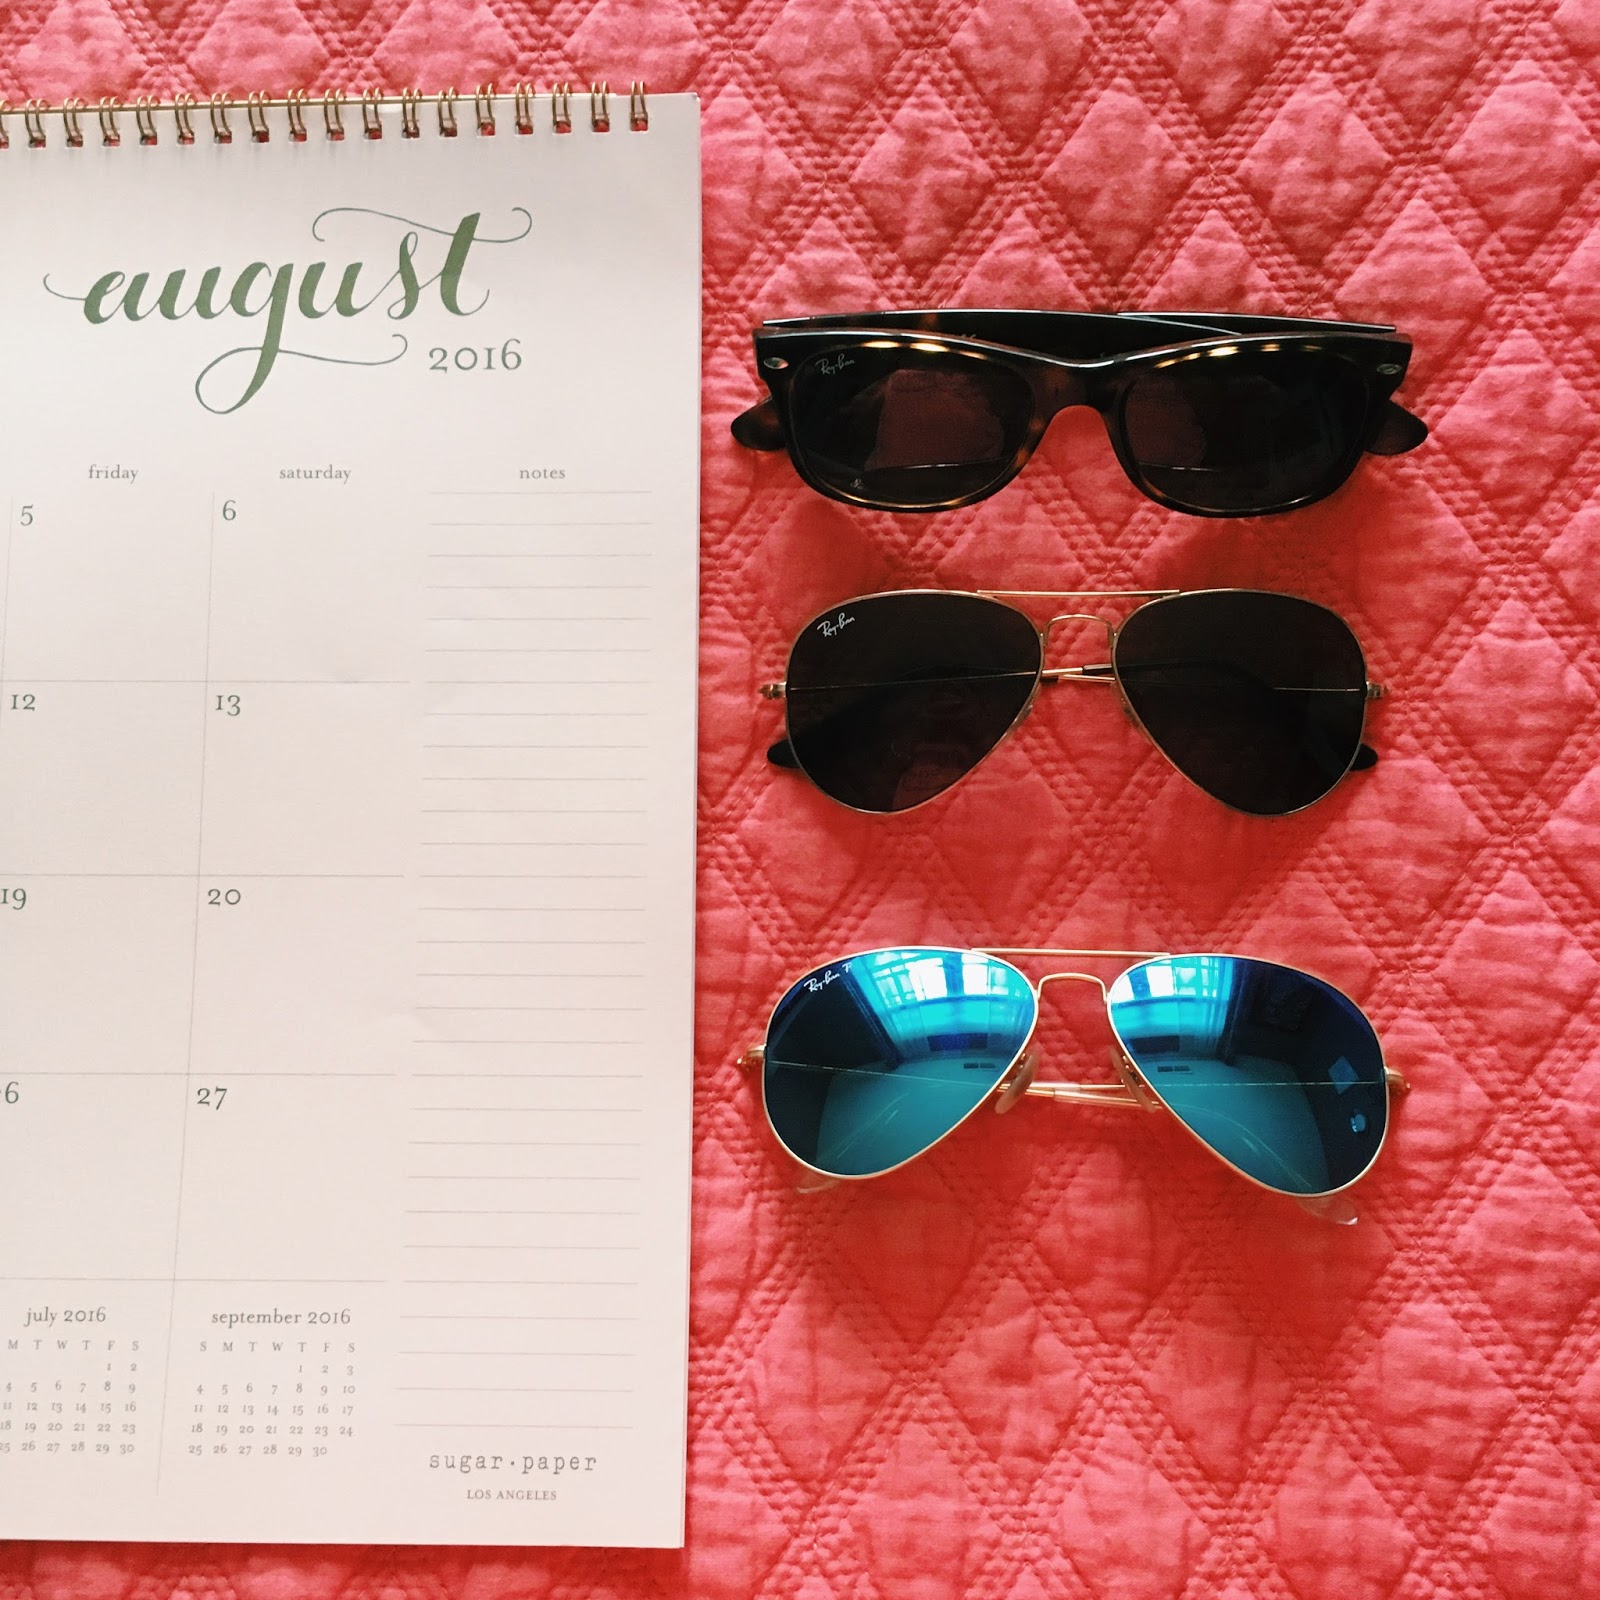 August! You Are Finally Here!! I Am So So Very Happy To See You. I Have  Been Waiting For The Month Of August For Quite Some Time Now, So To Say I  ...